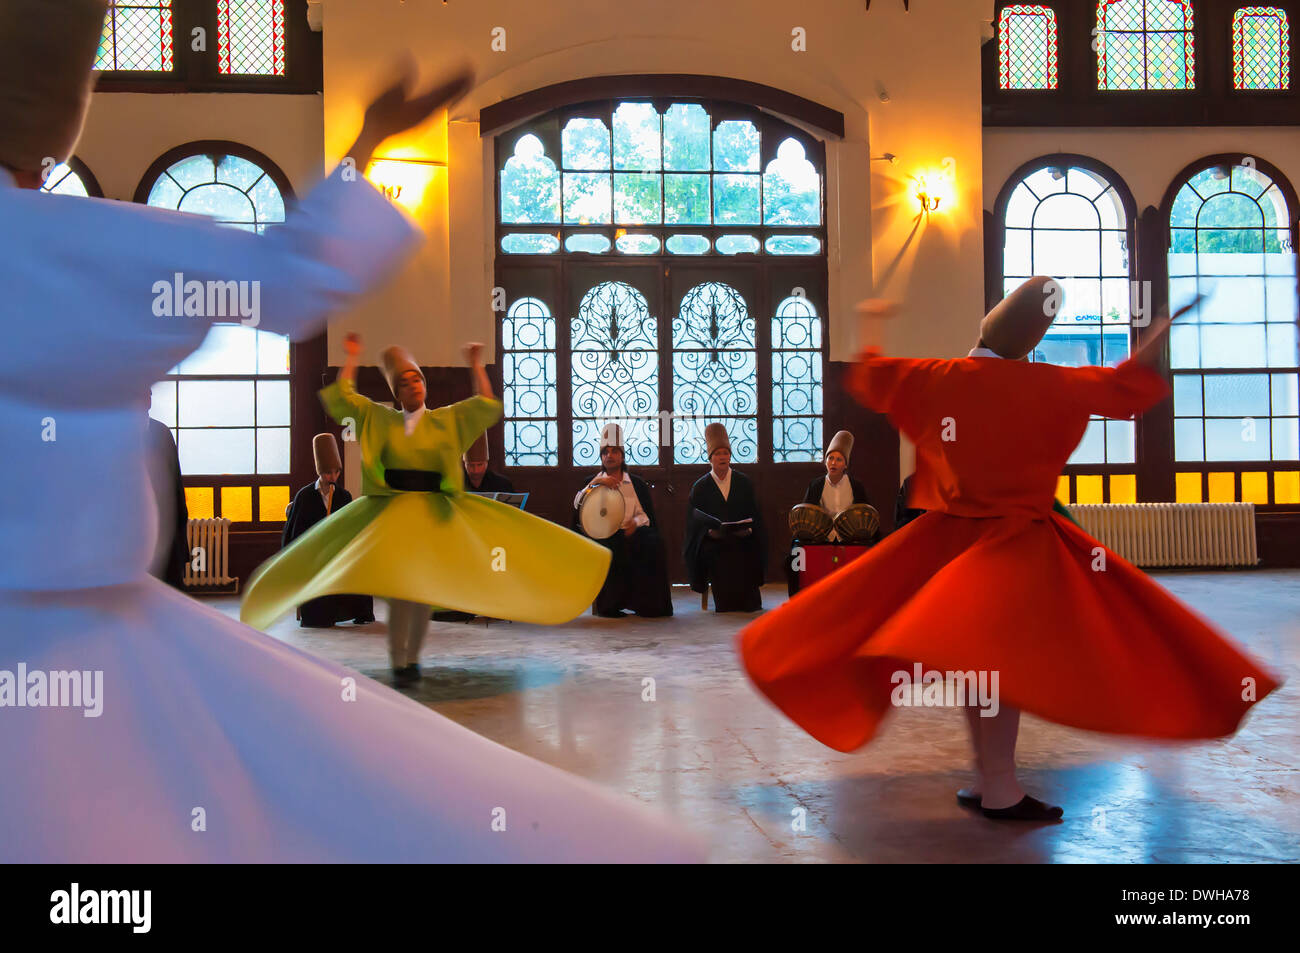 Whirling dervish, Istanbul - Stock Image